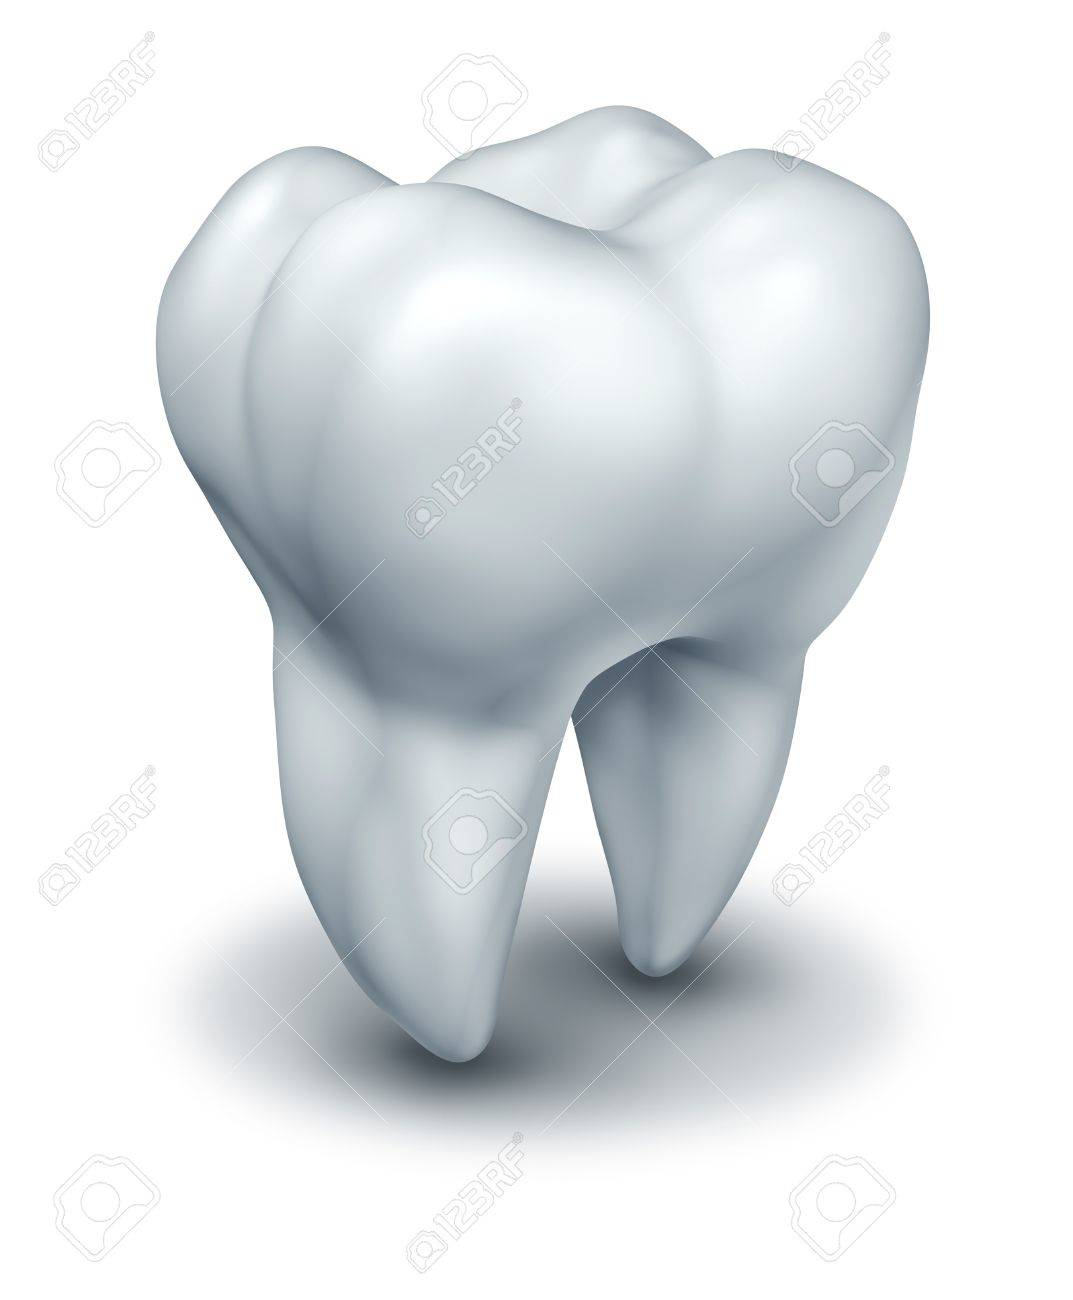 Human tooth dental symbol representing dentist medicine and dentistry surgery represented by a white single molar tooth on a white background. Stock Photo - 10976392